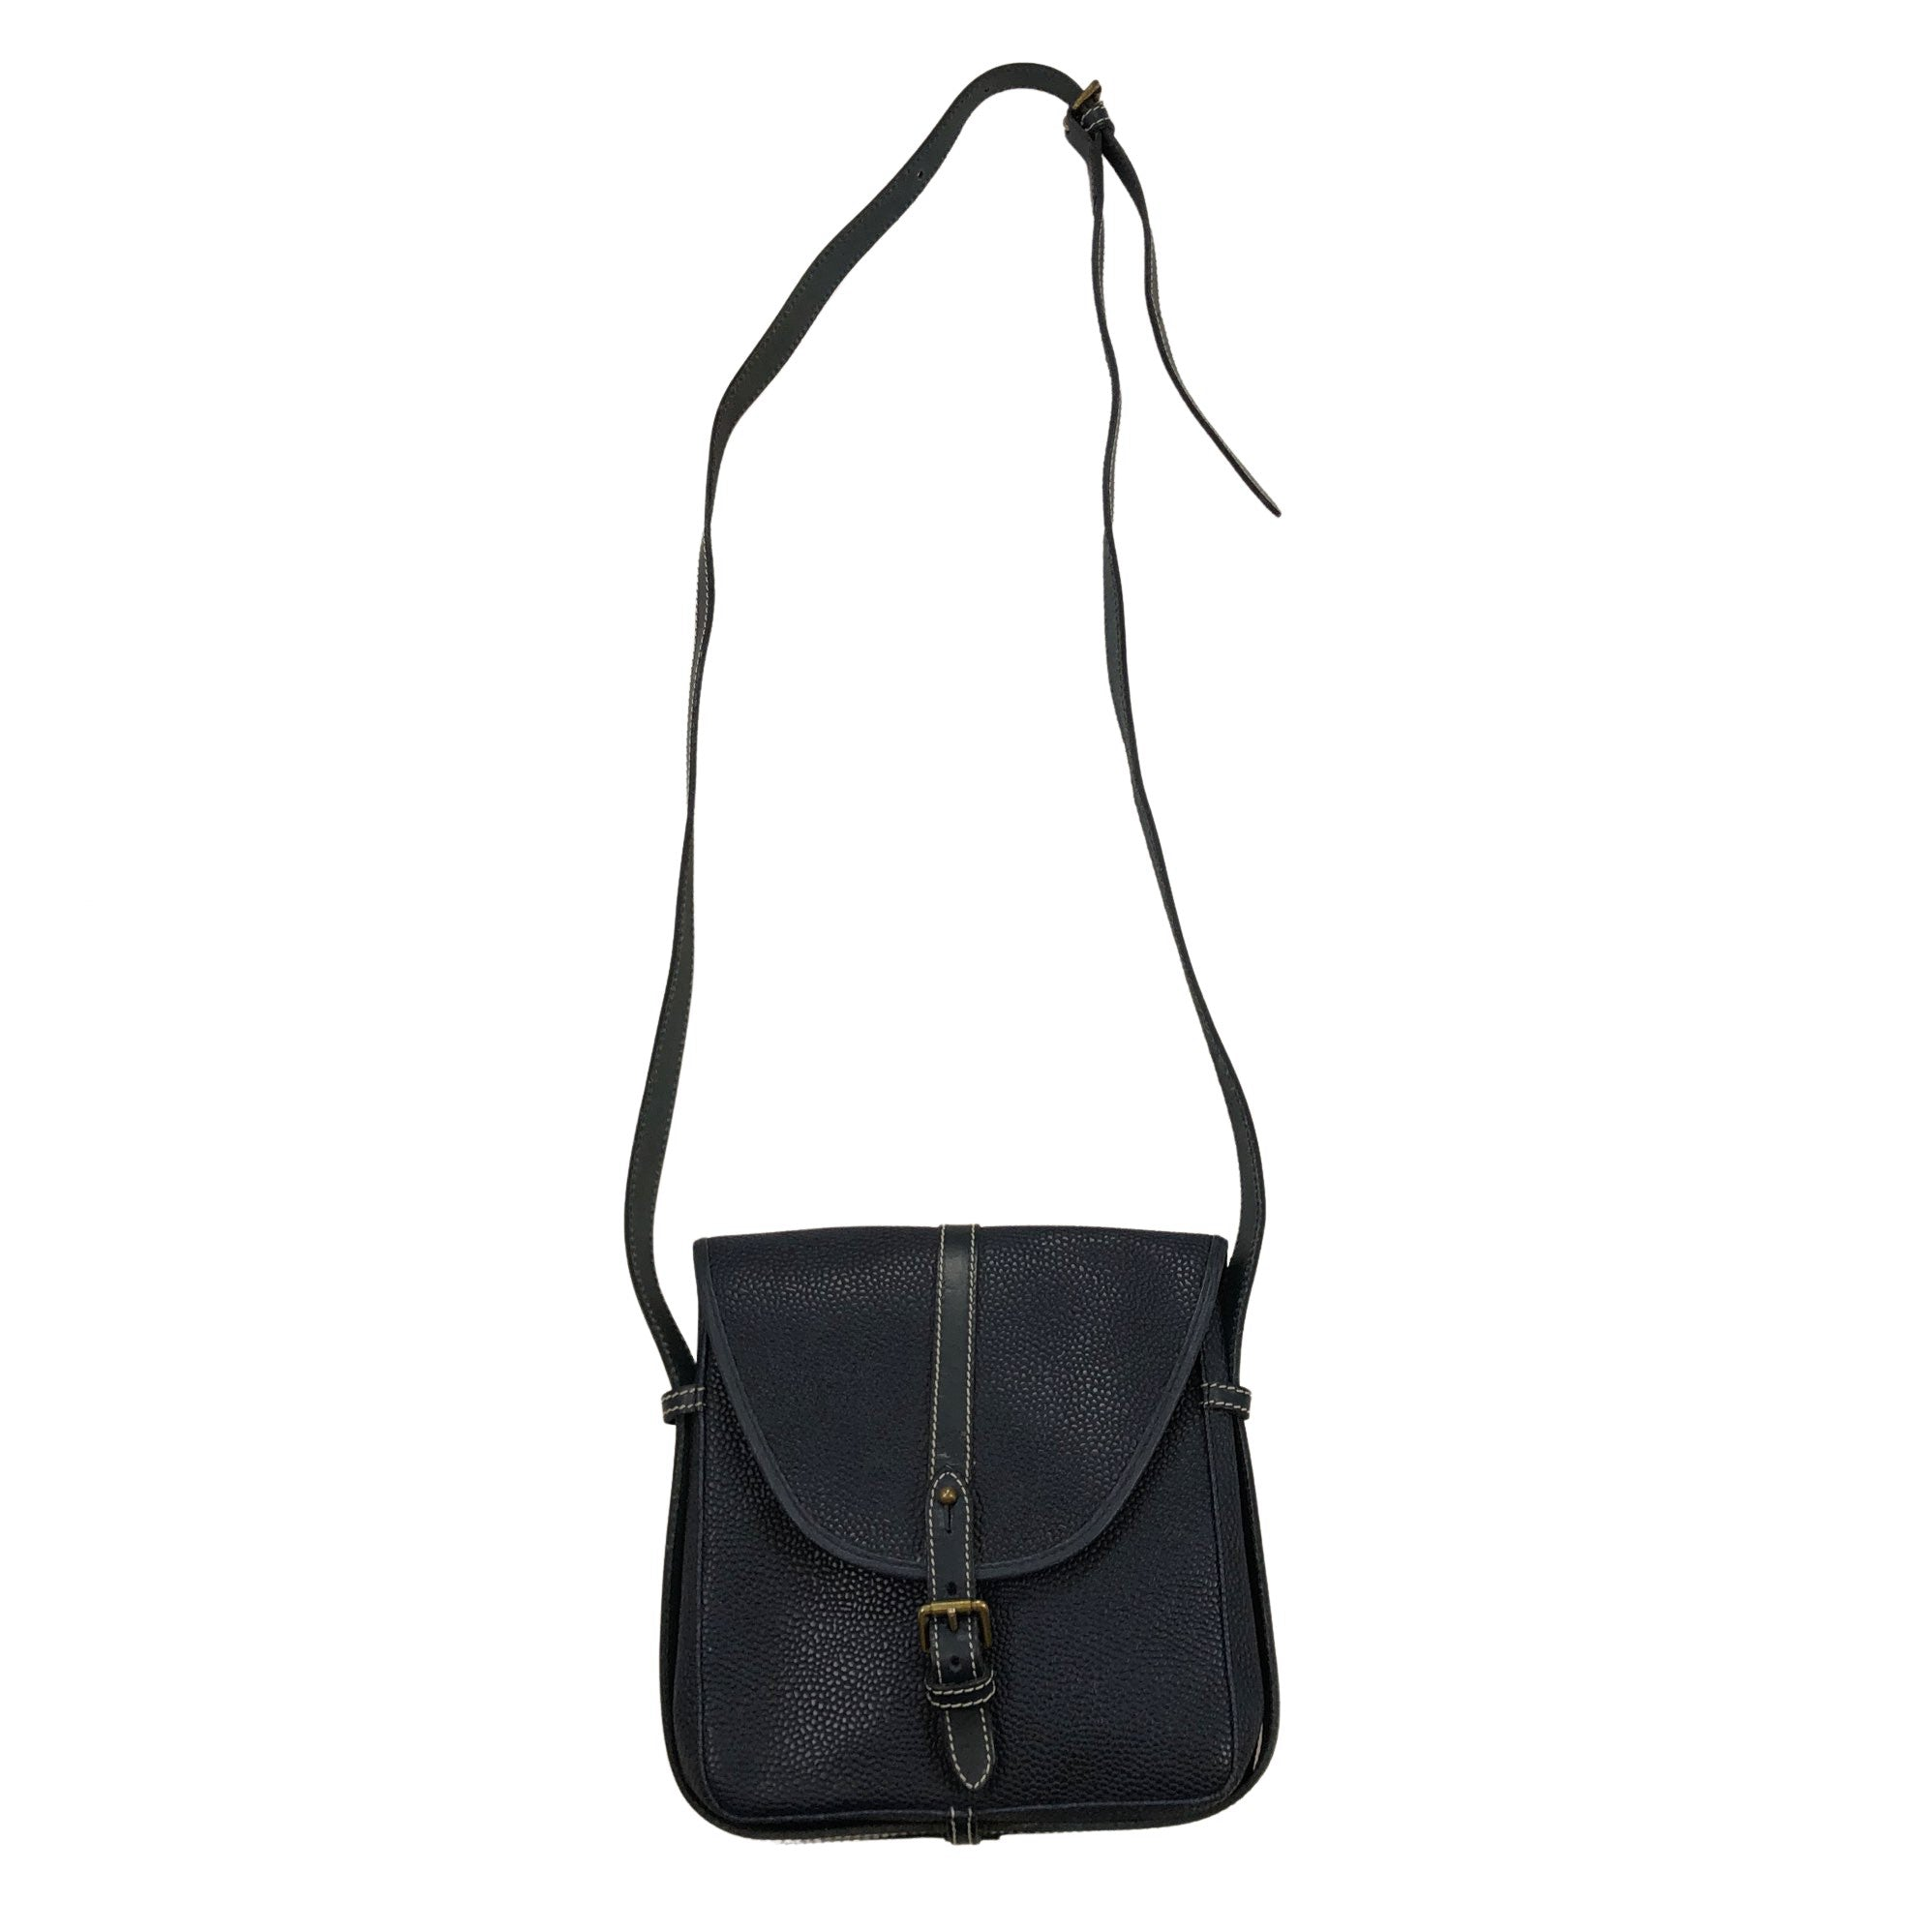 Shoulder bag, size Mini © Emmy Clothing Company Oy